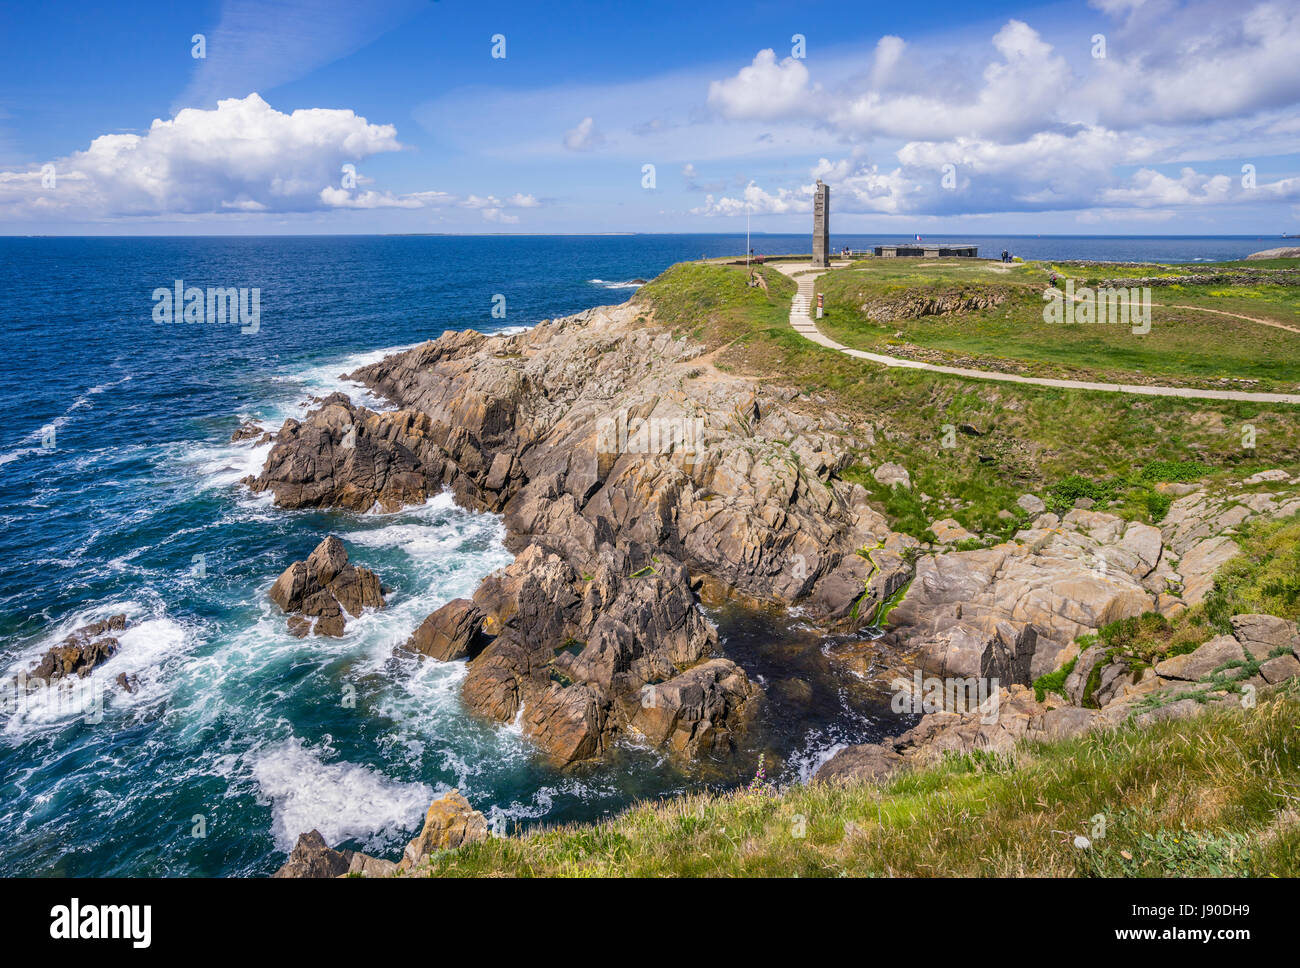 France, Brittany, Finistére department, Pointe Sant-Mathieu, view of the cenotaph stela, a memorial to sailors - Stock Image